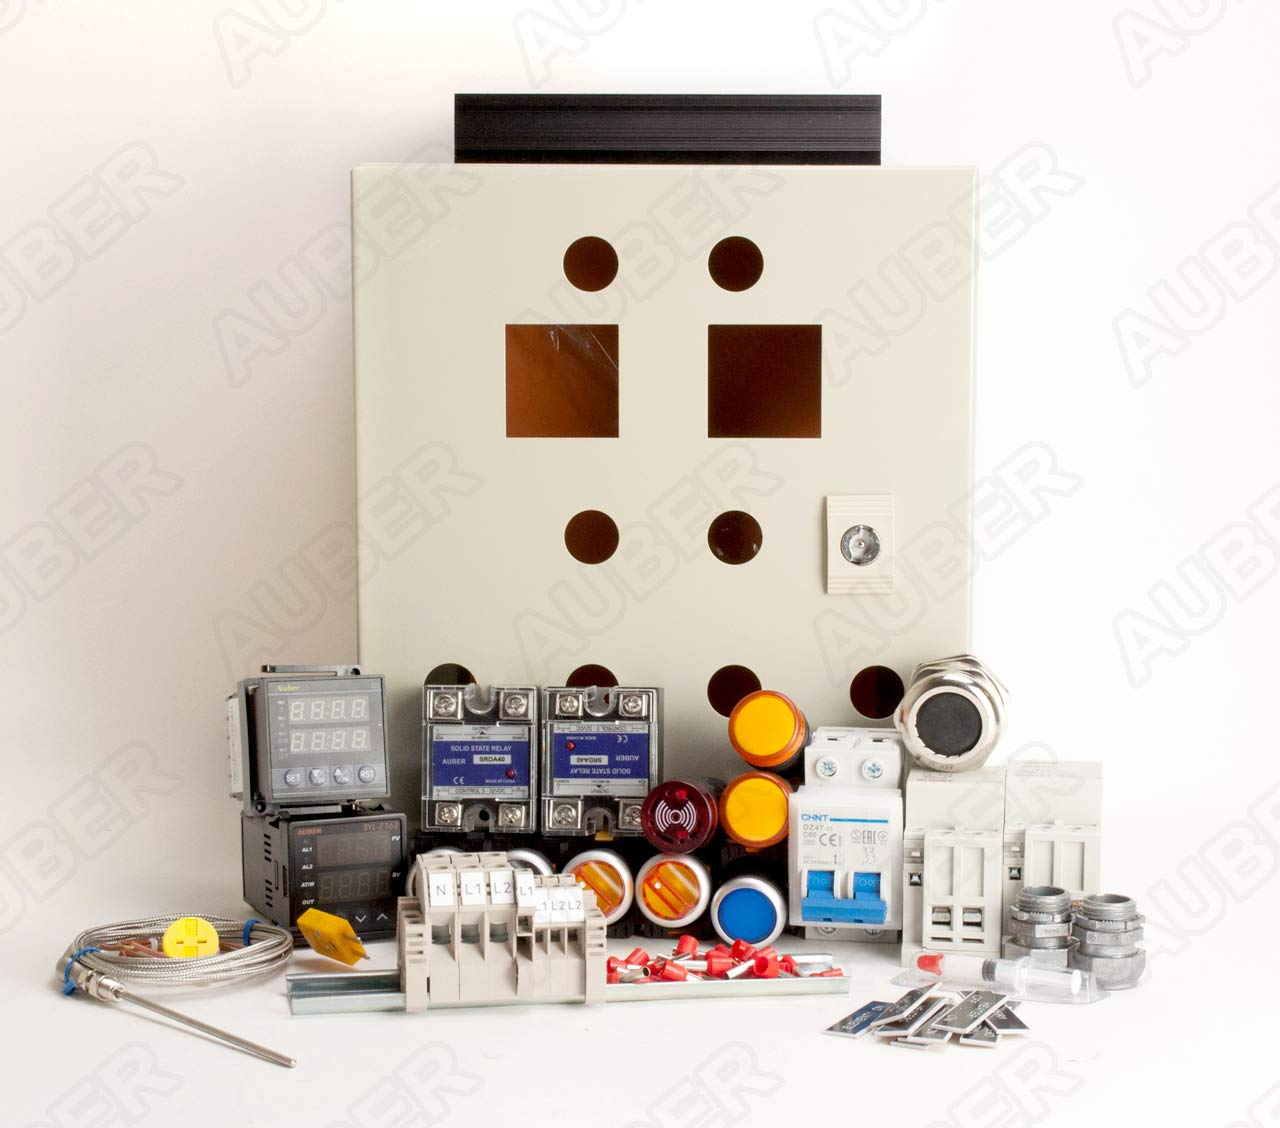 Powder Coating Oven Controller Kit, 240V 50A 12000W (KIT-PCO2)